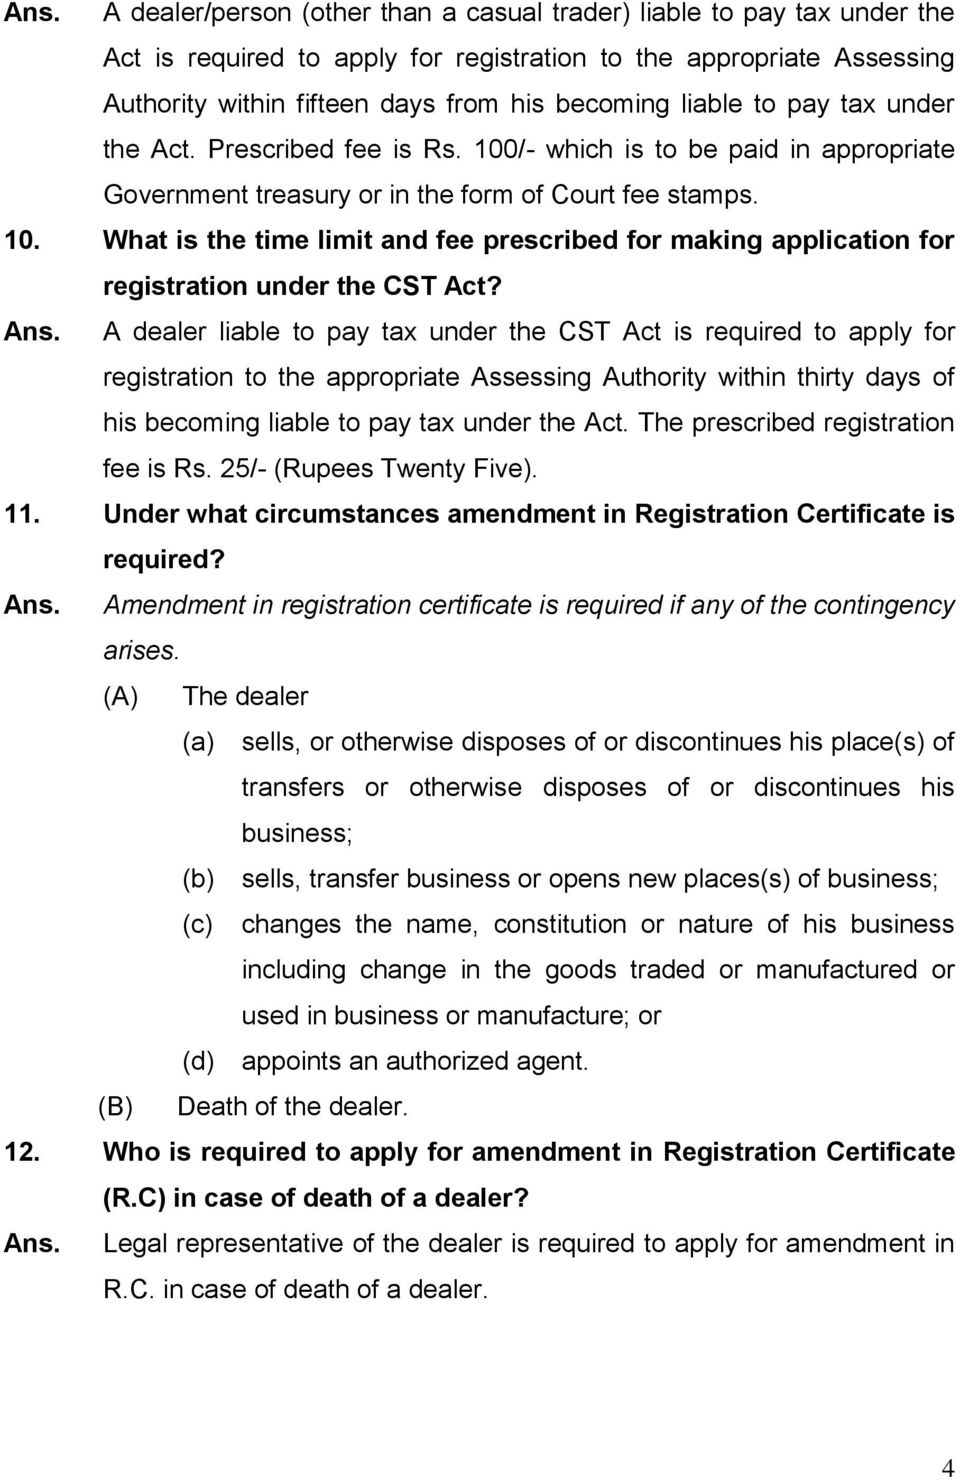 Ans. A dealer liable to pay tax under the CST Act is required to apply for registration to the appropriate Assessing Authority within thirty days of his becoming liable to pay tax under the Act.